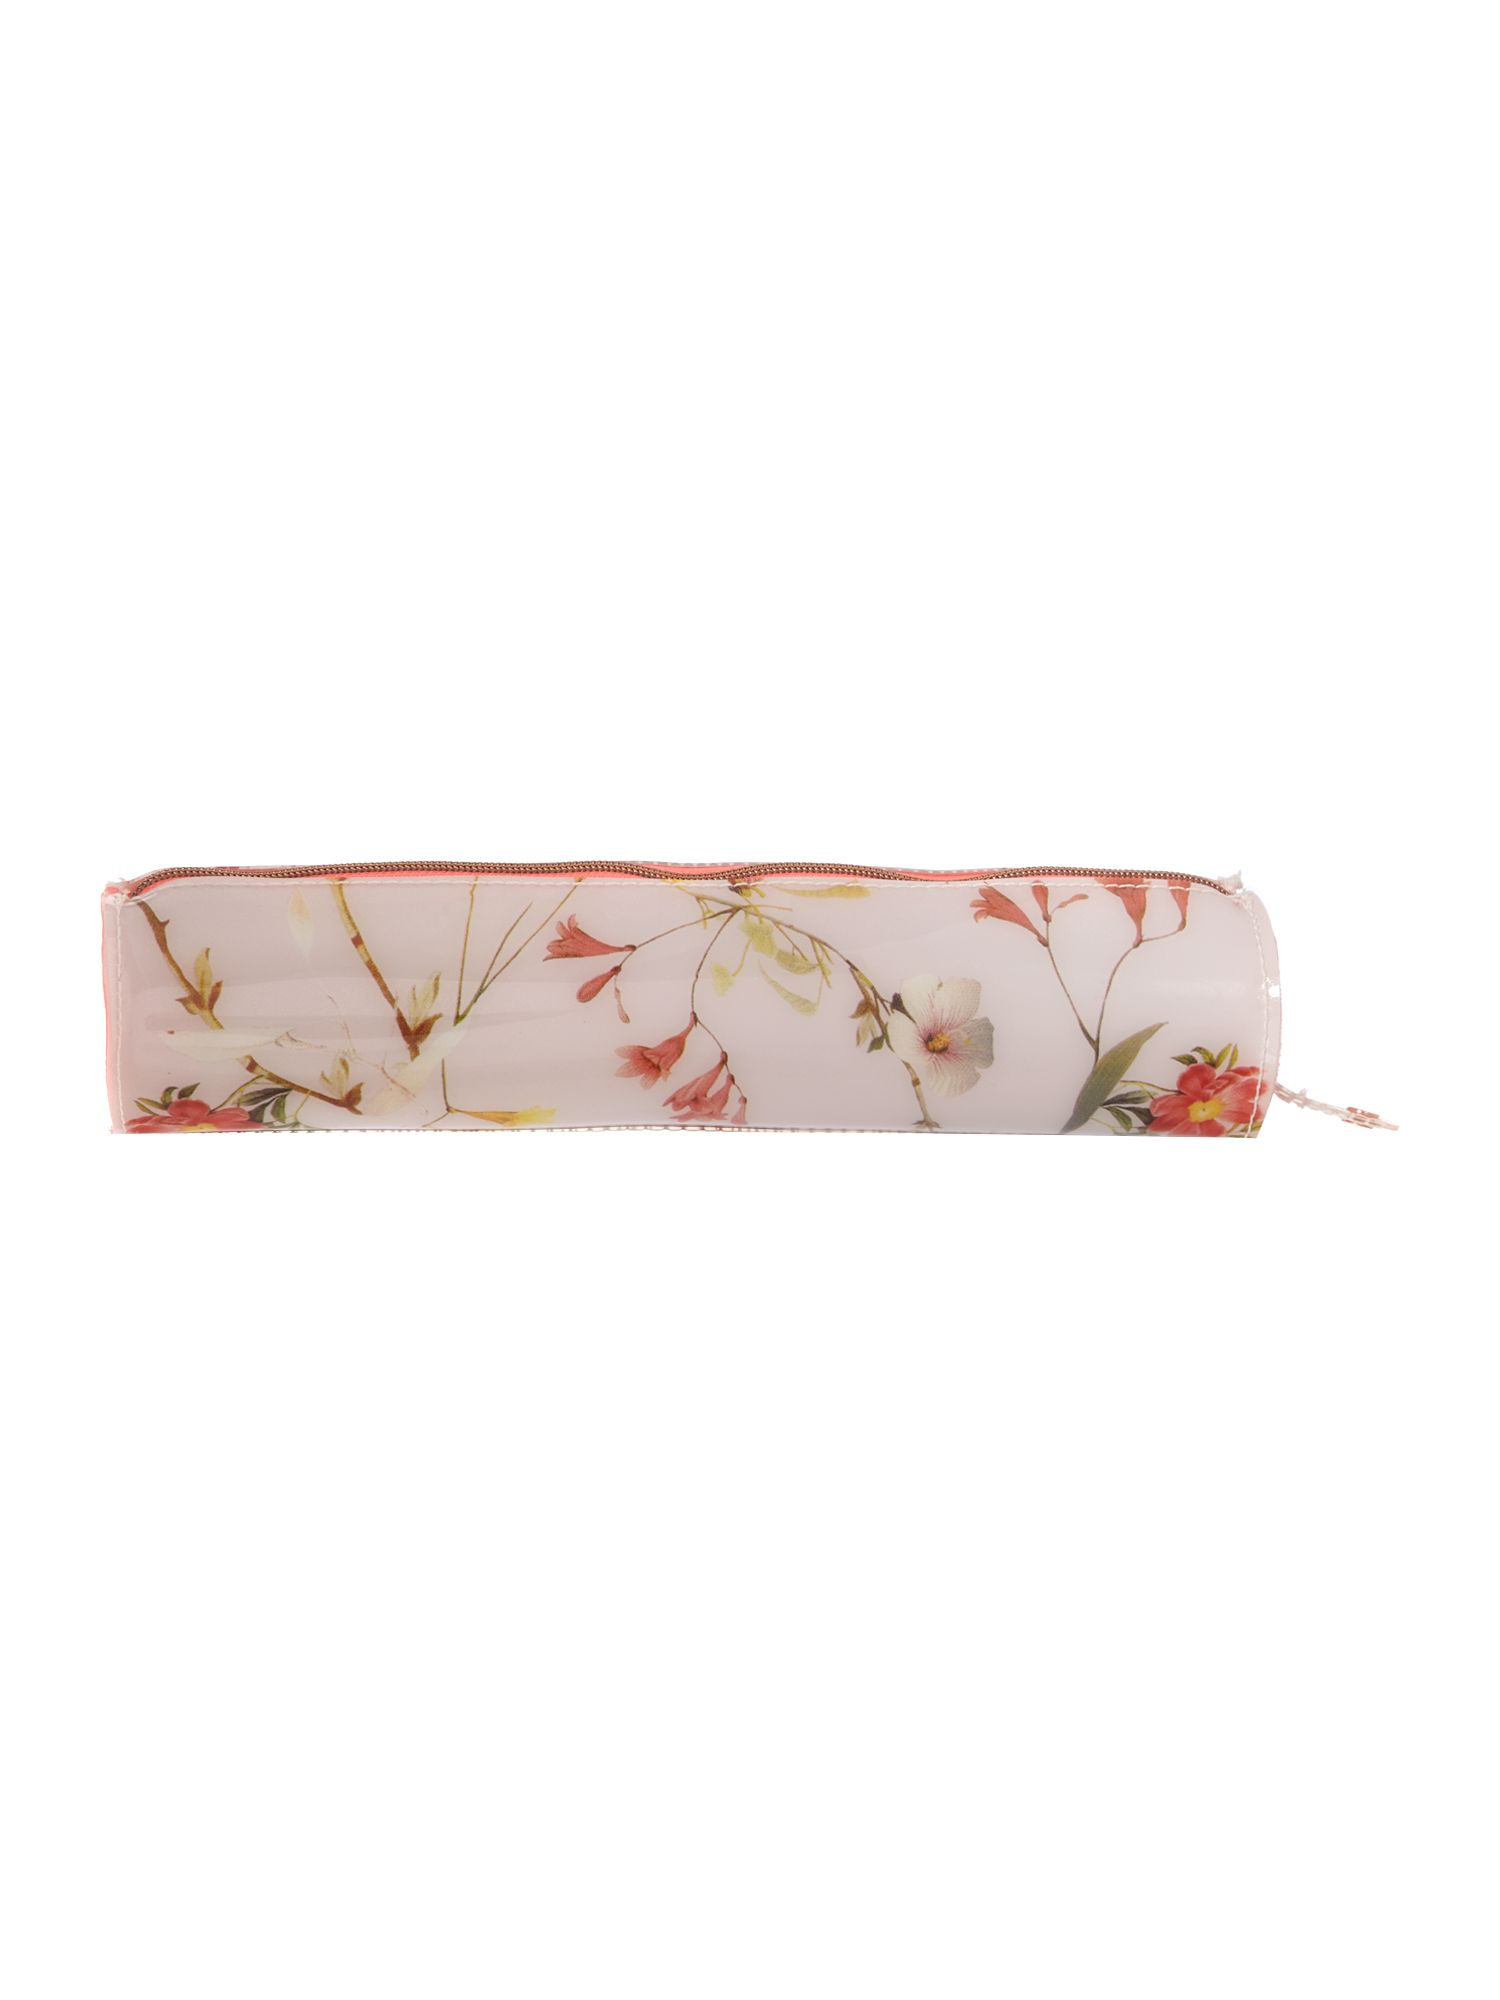 Nude floral print pencil case